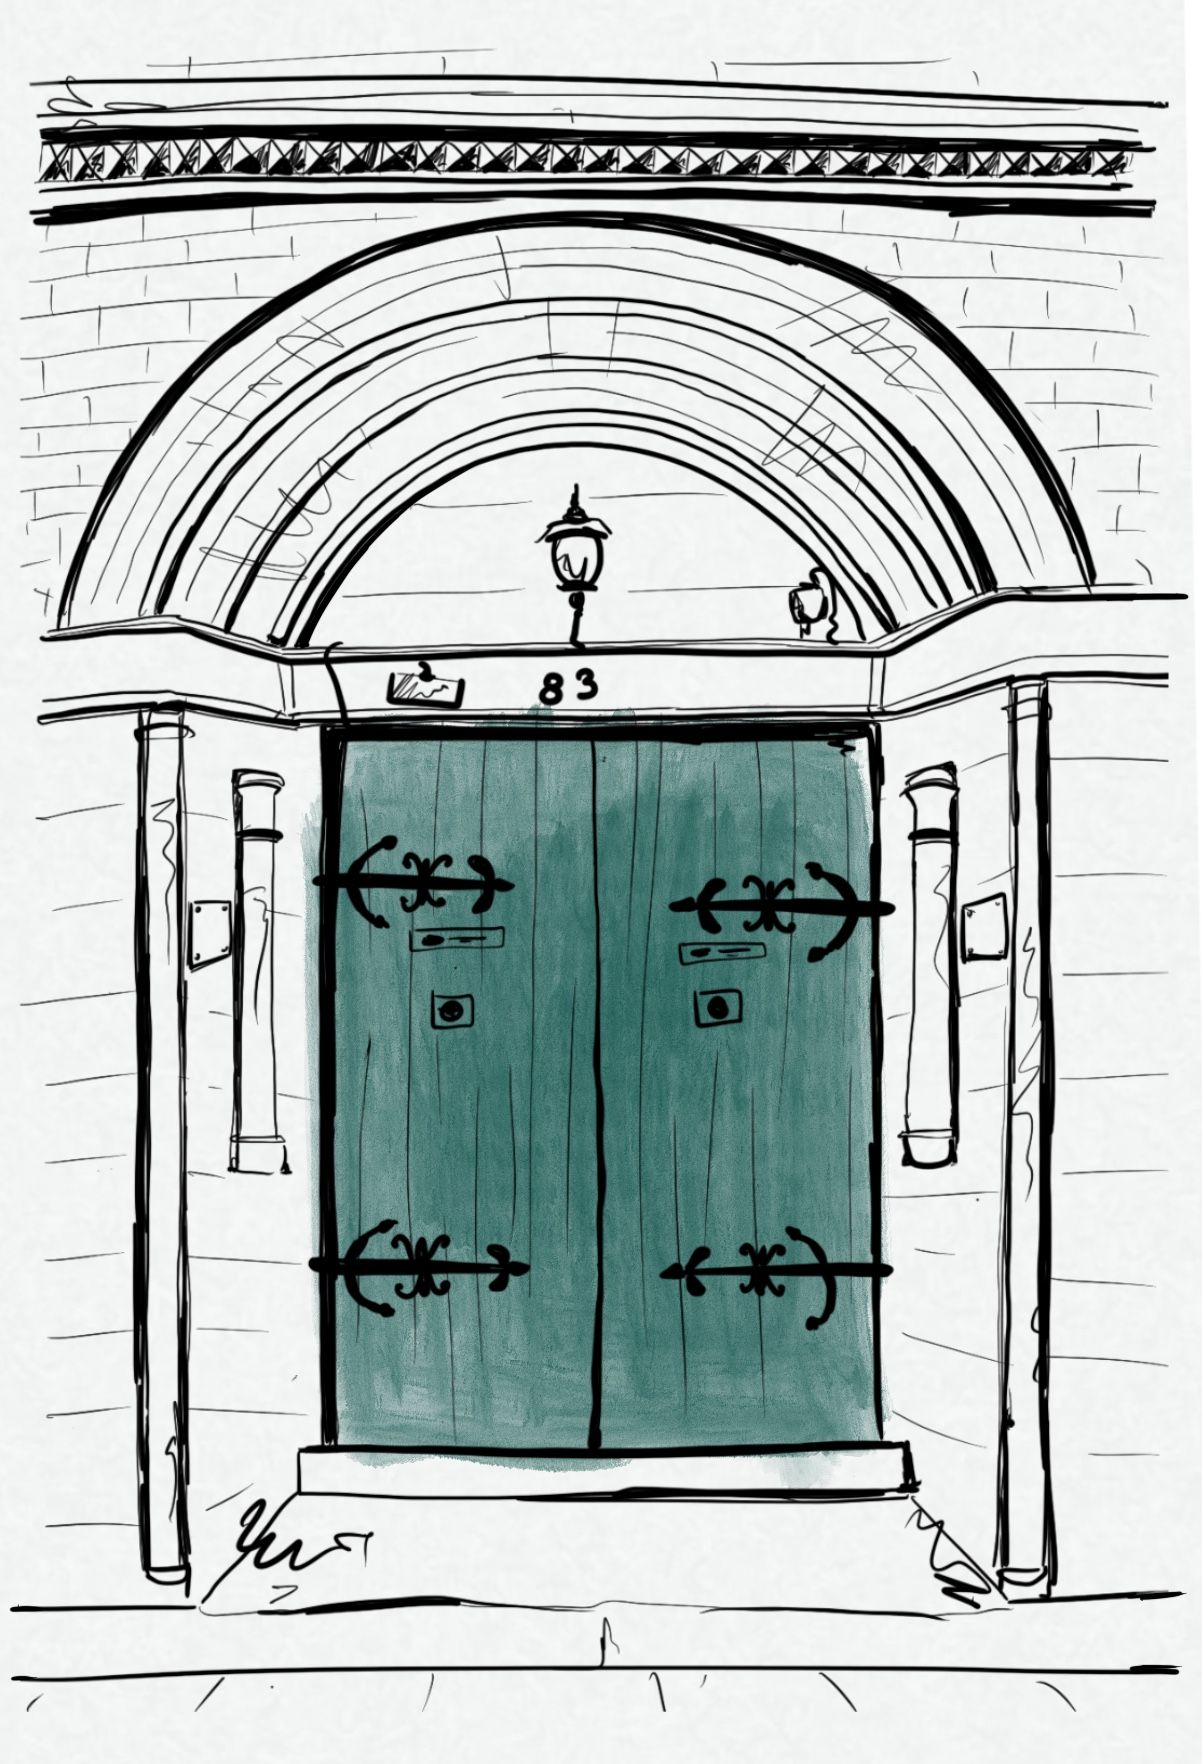 Artist's sketch of an ornate green doorway within an arch